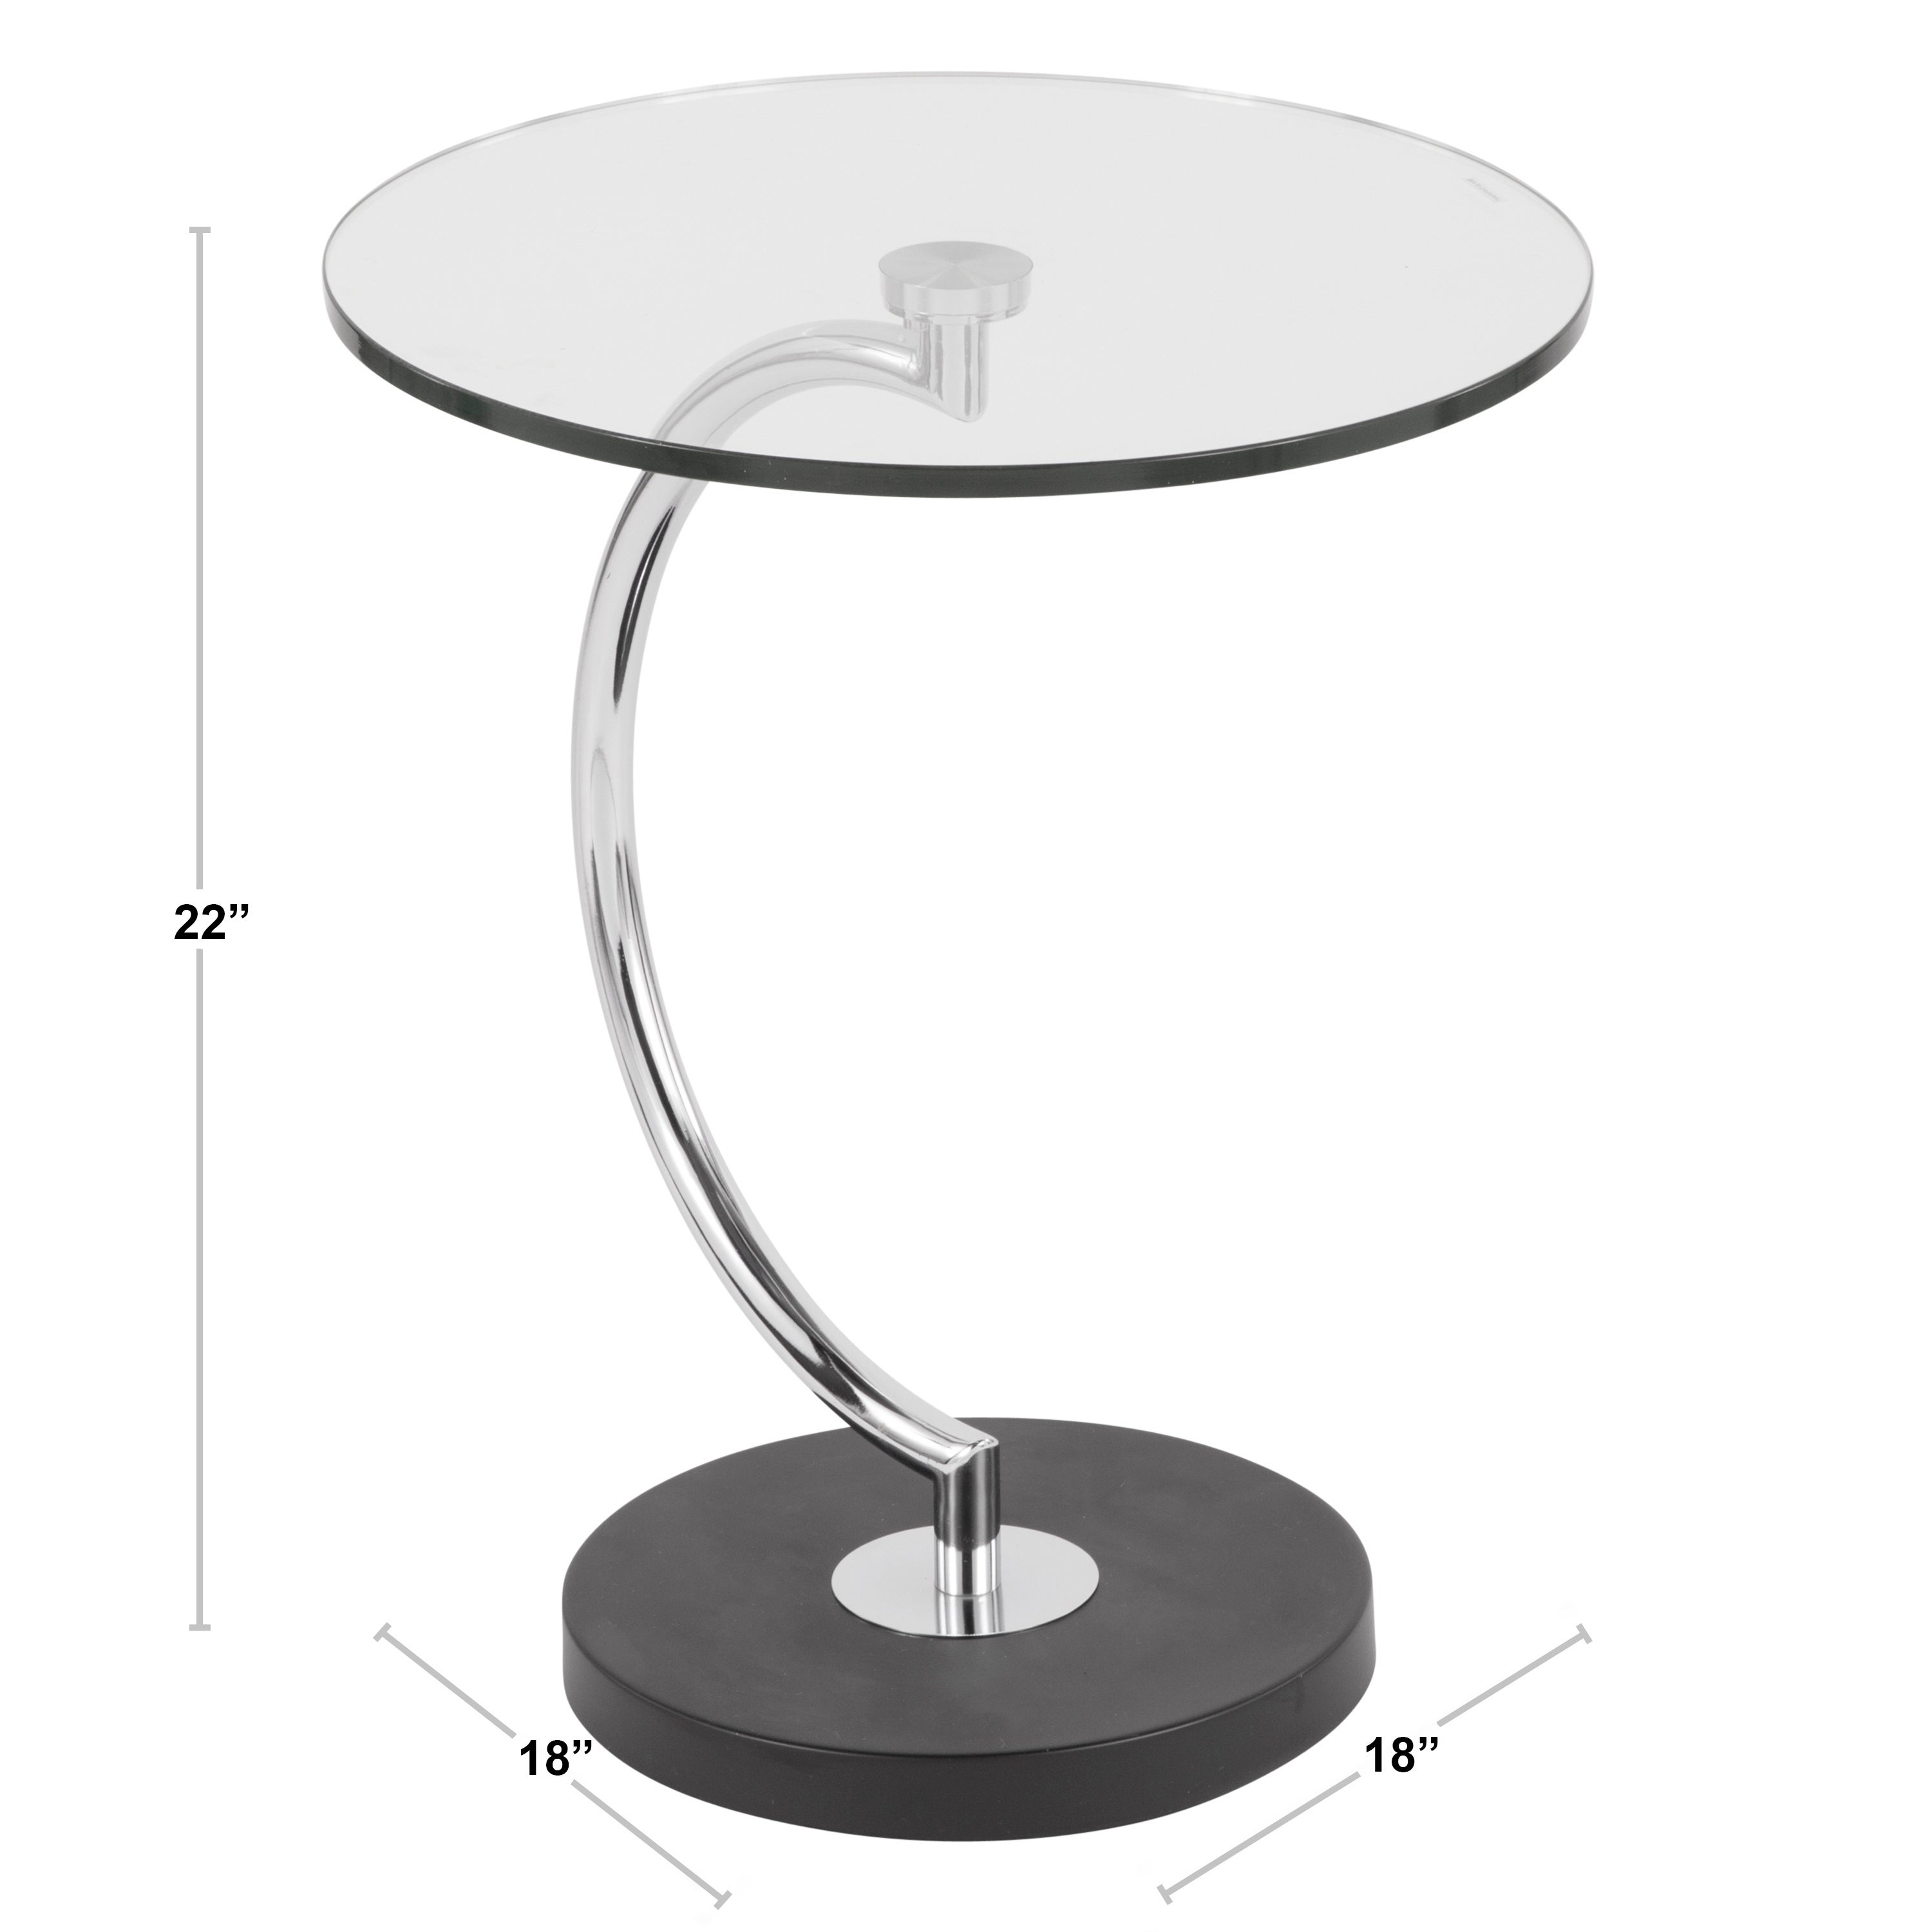 Shop Black Friday Deals On Contemporary C Shaped Glass And Chrome End Table Overstock 11552185